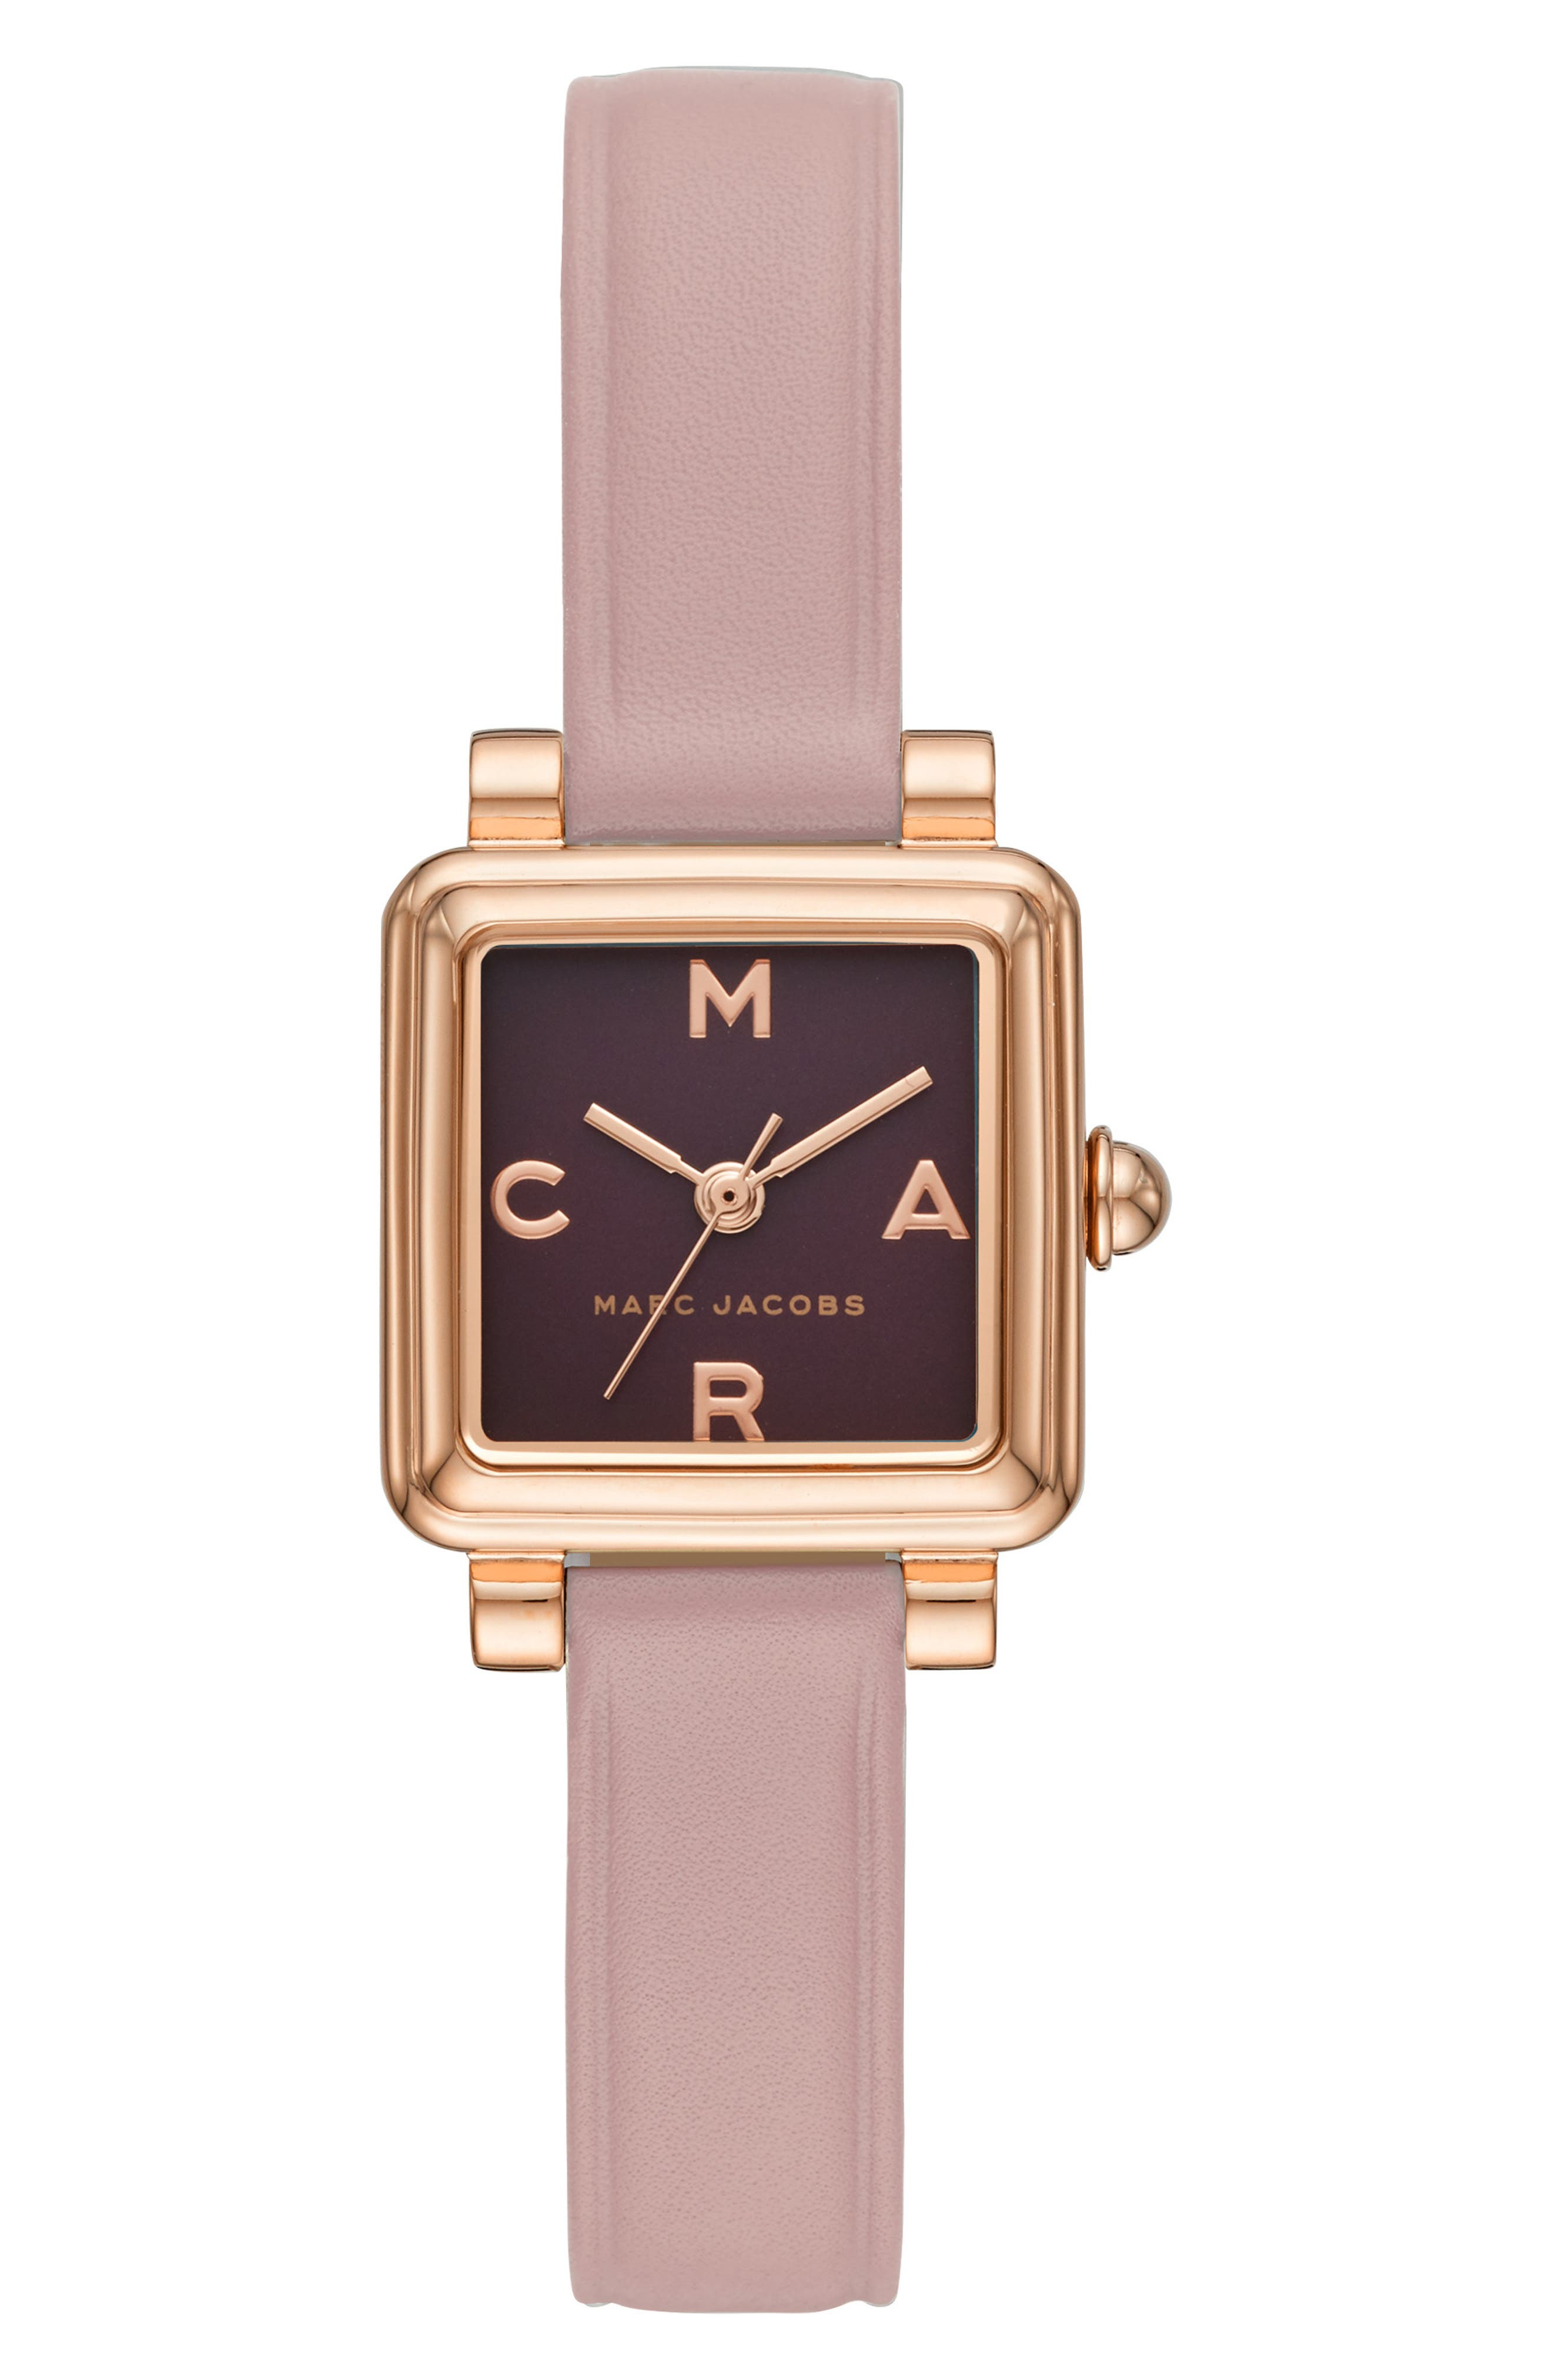 Vic Leather Strap Watch, 20mm,                         Main,                         color, PINK/ BURGUNDY/ ROSE GOLD